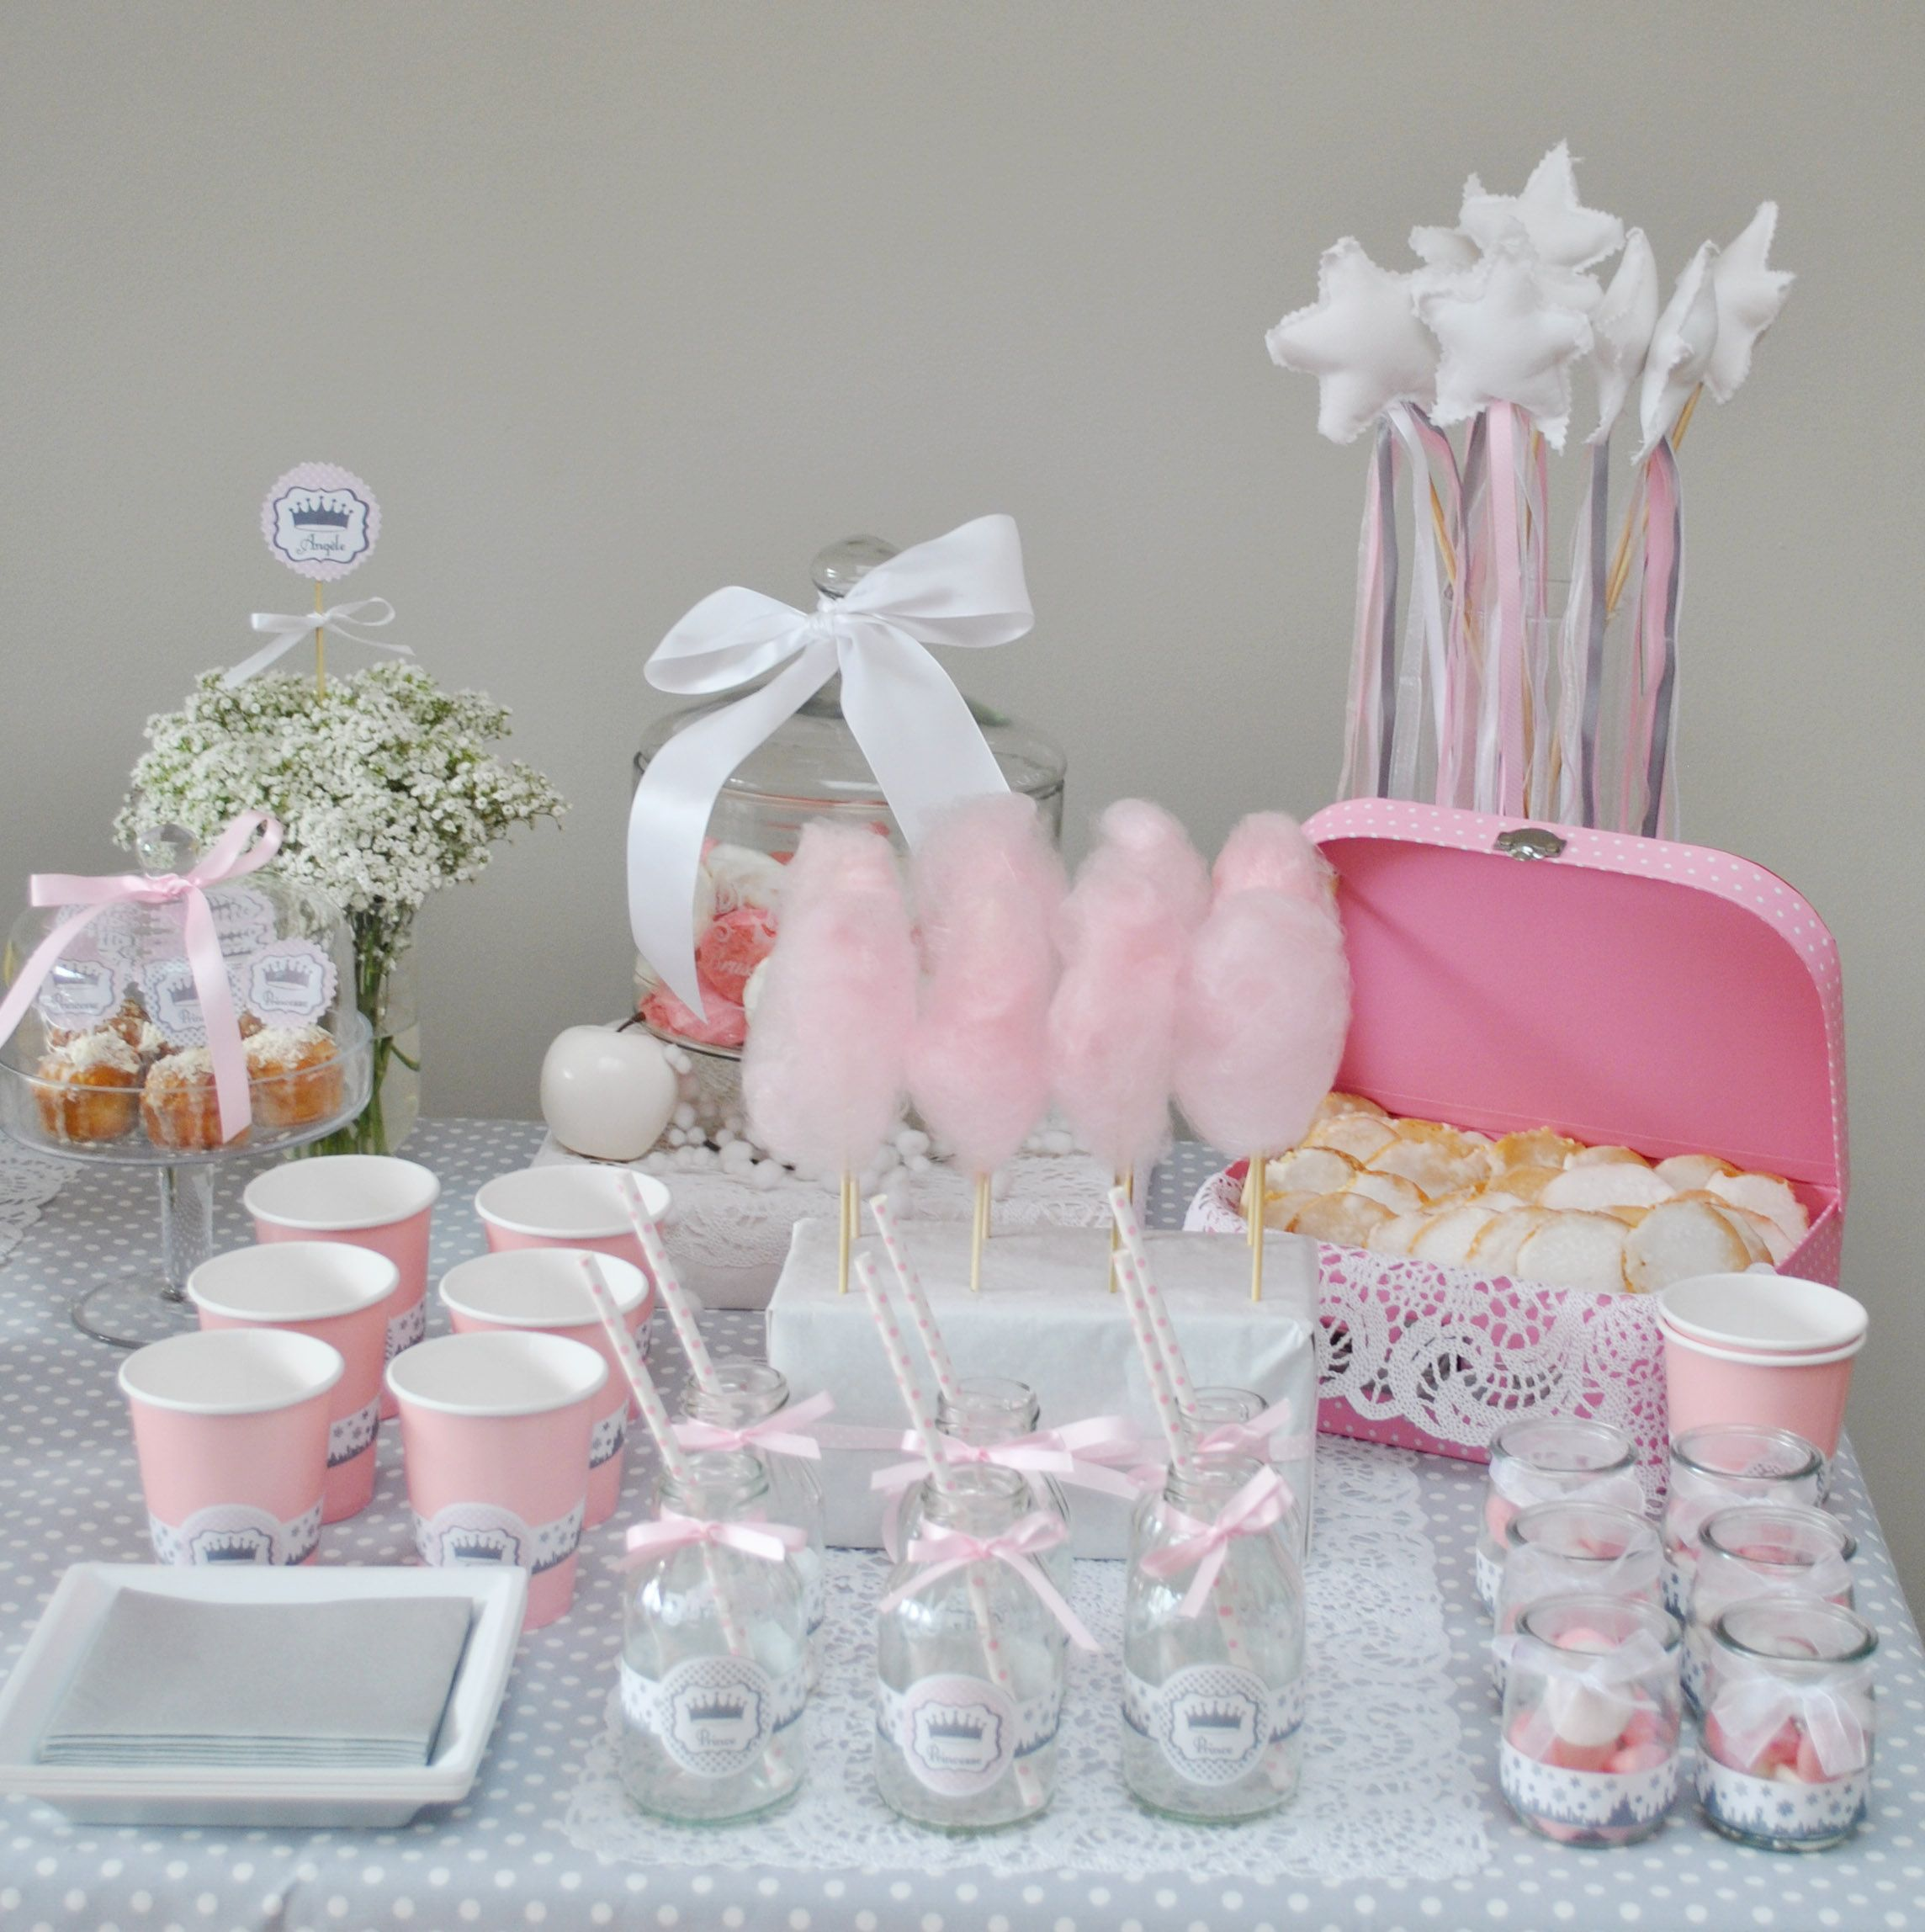 Idée Déco Anniversaire Sweet Table Baby Shower Mubie Pinterest Deco